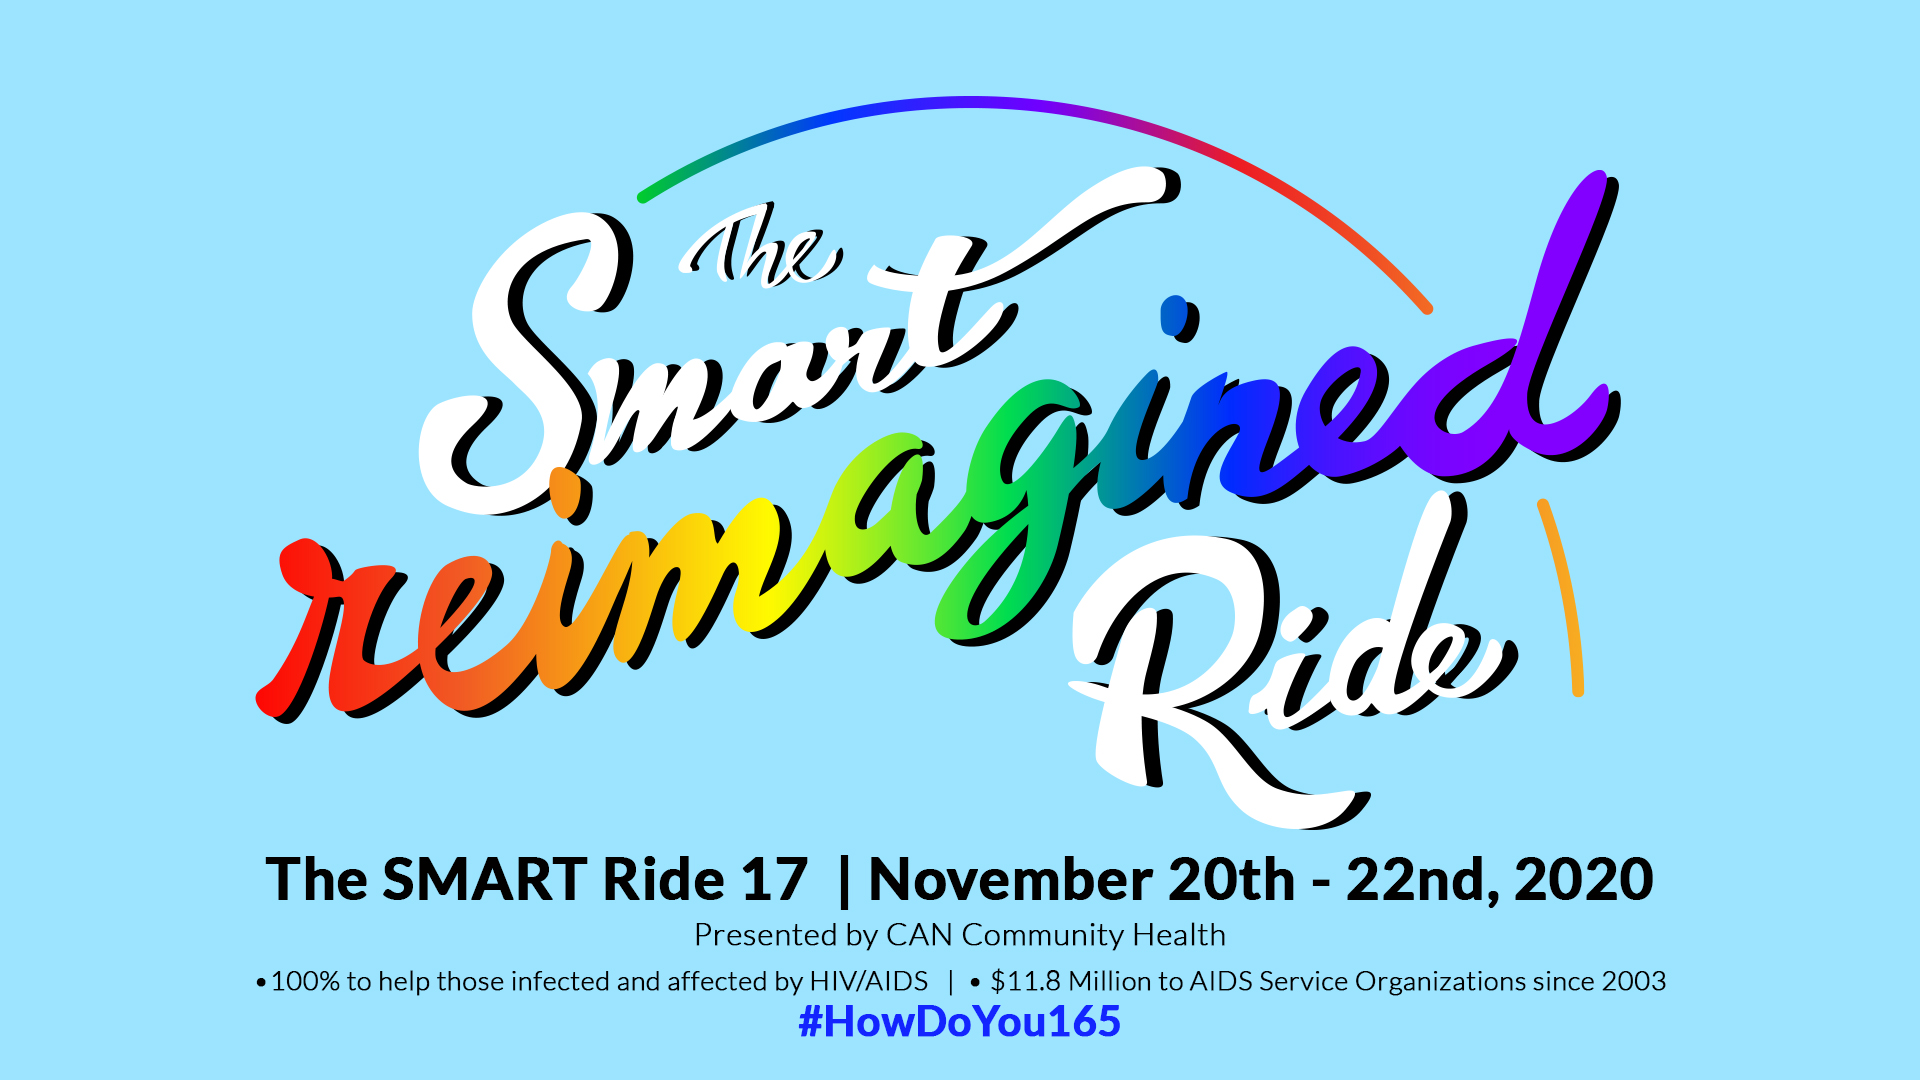 Broward House Presents The SMART Ride Re-imagined